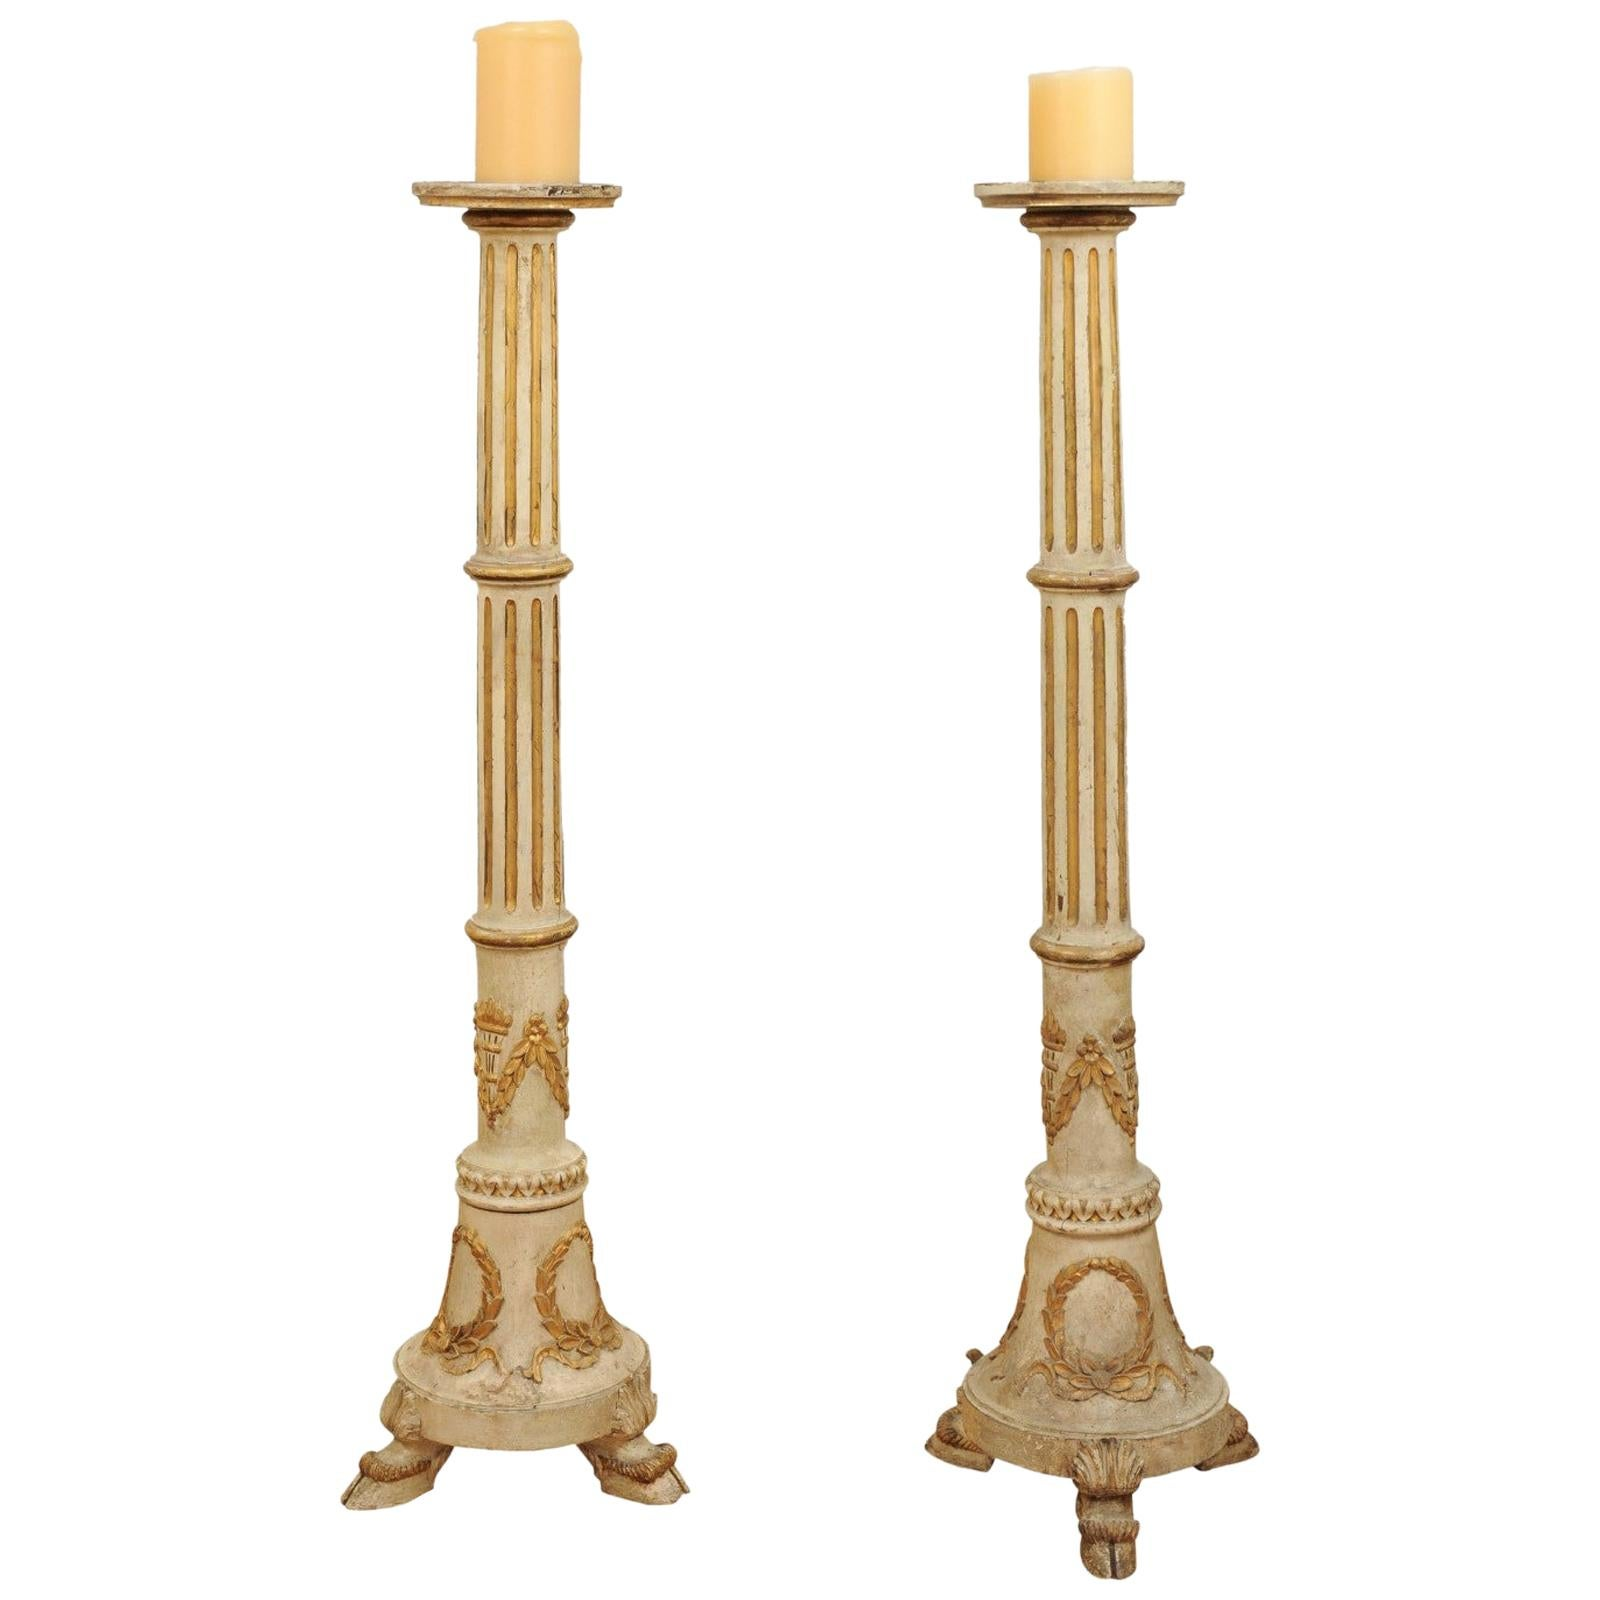 Pair of Tall French Napoléon III 1860s Candlesticks with Carved Gilt Motifs